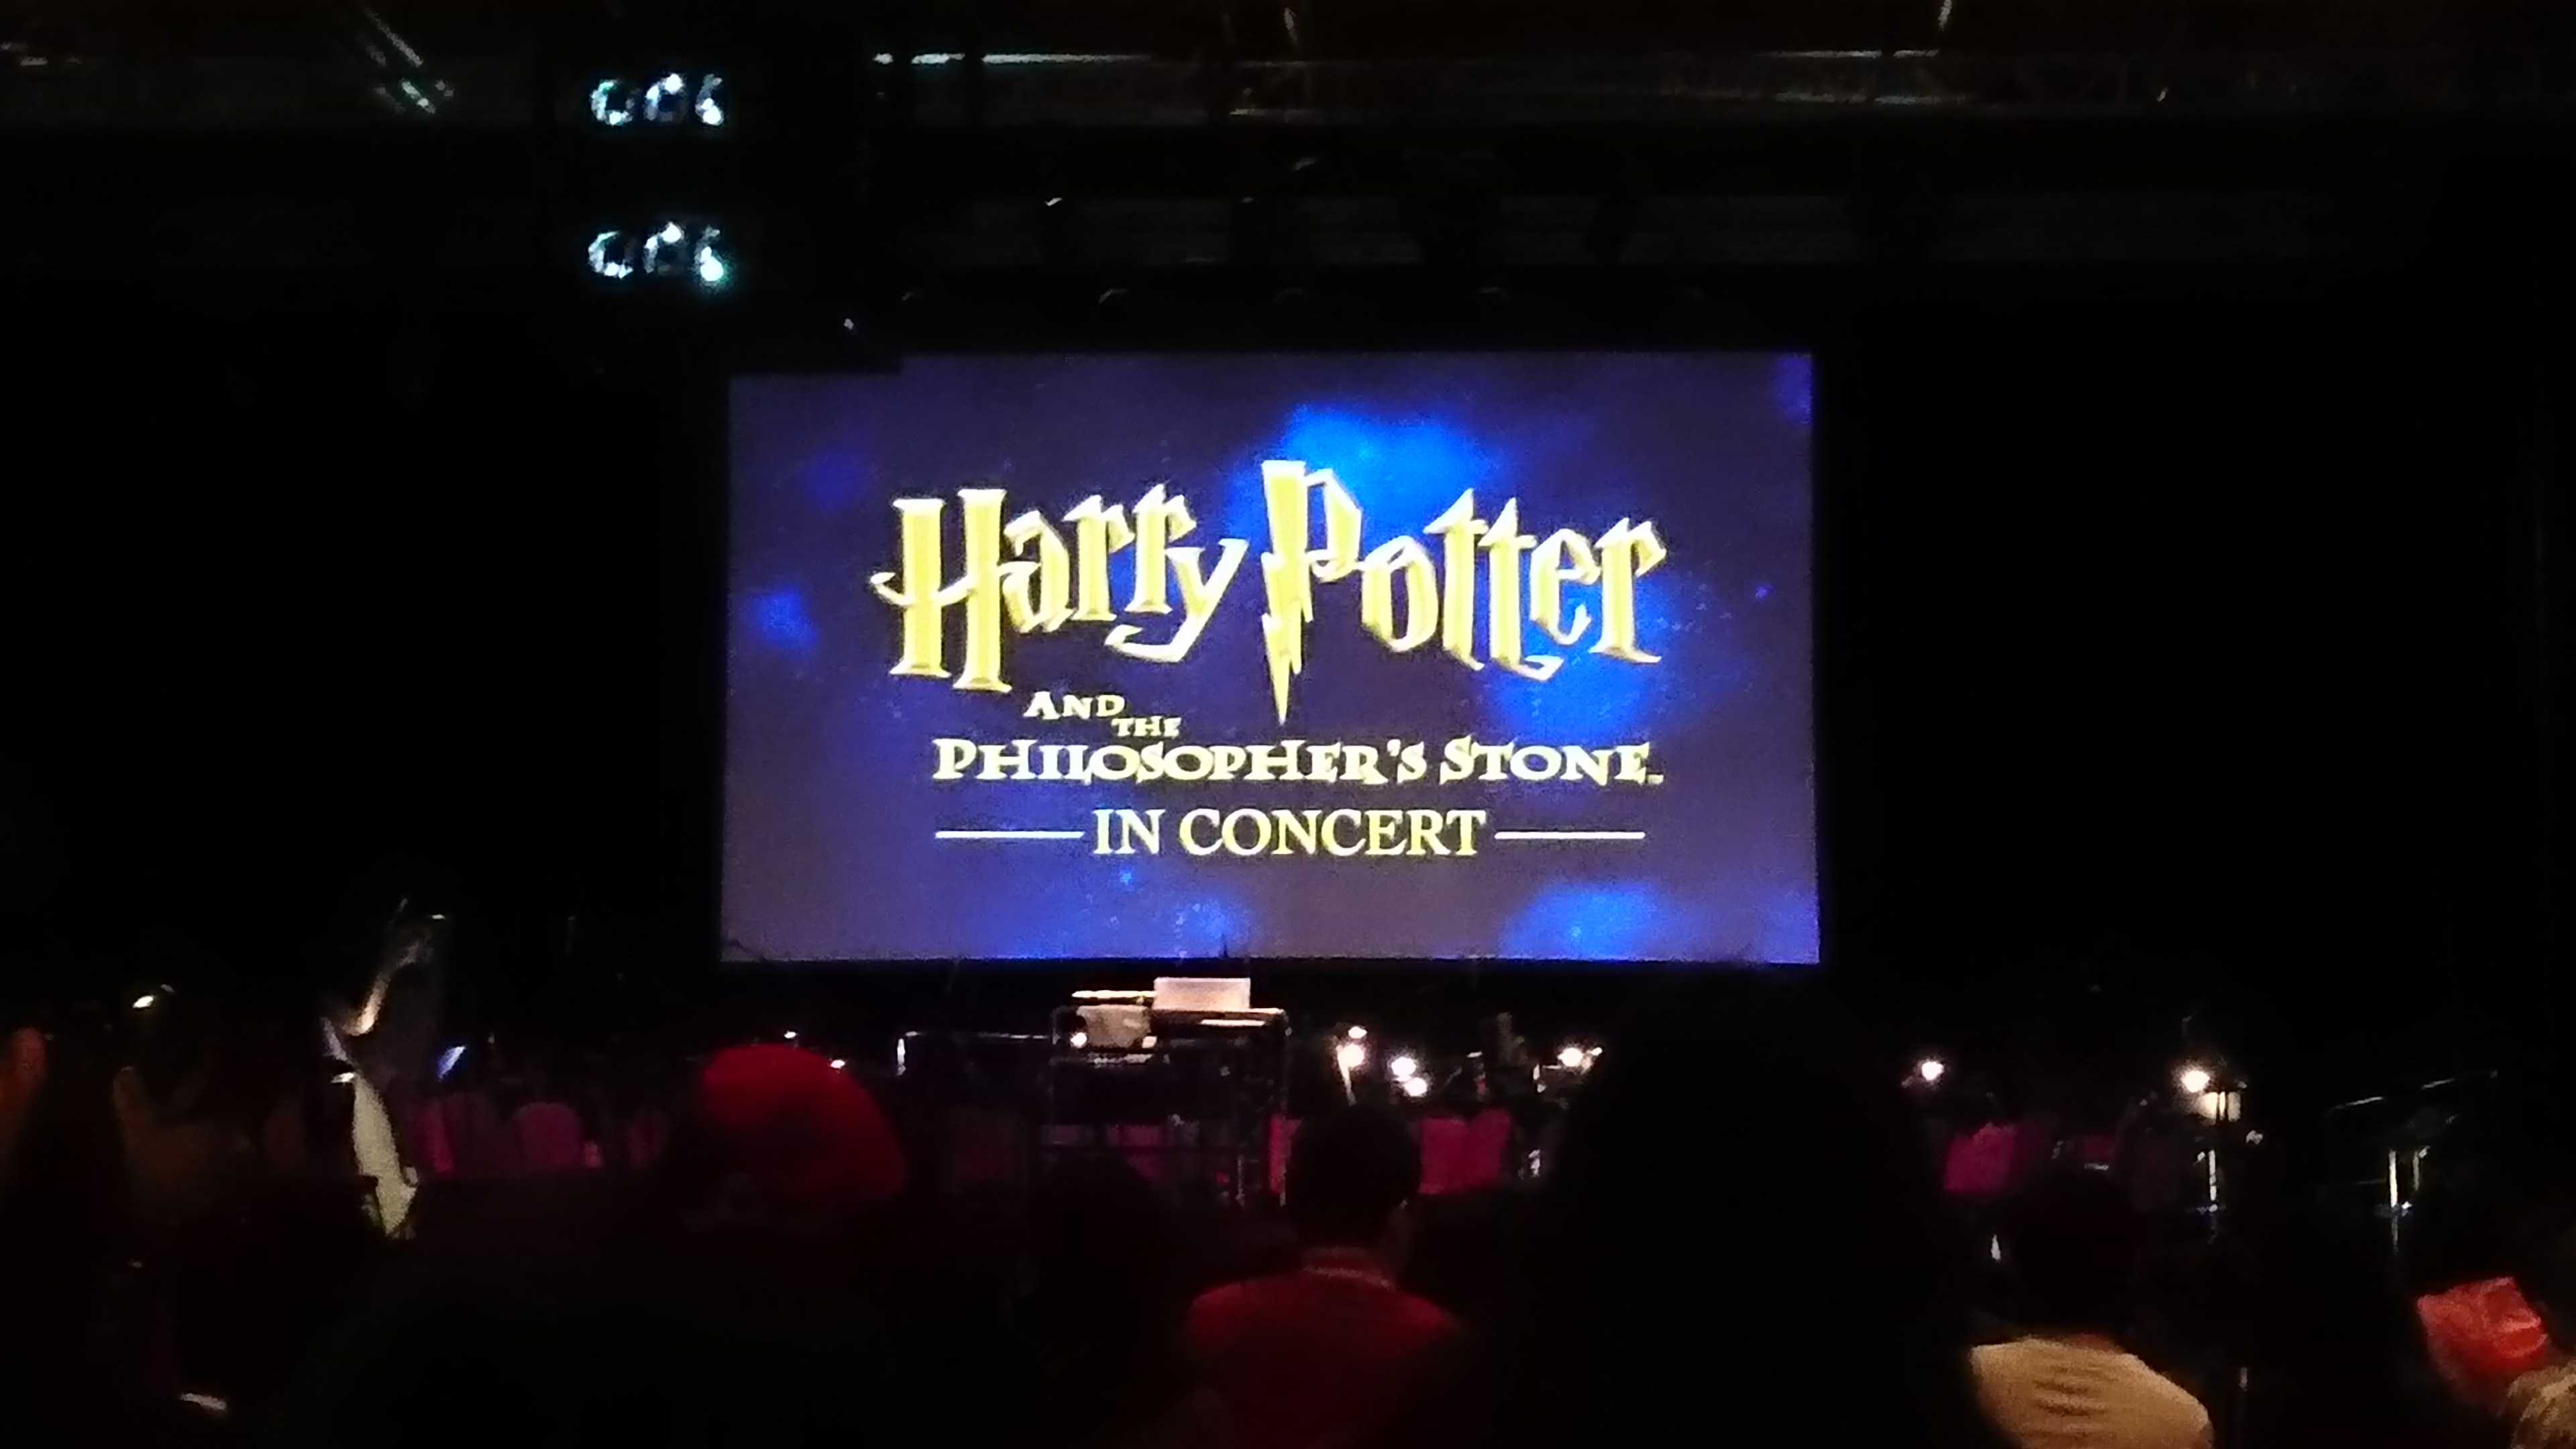 Harry Potter and the Philosopher Stone in Concert